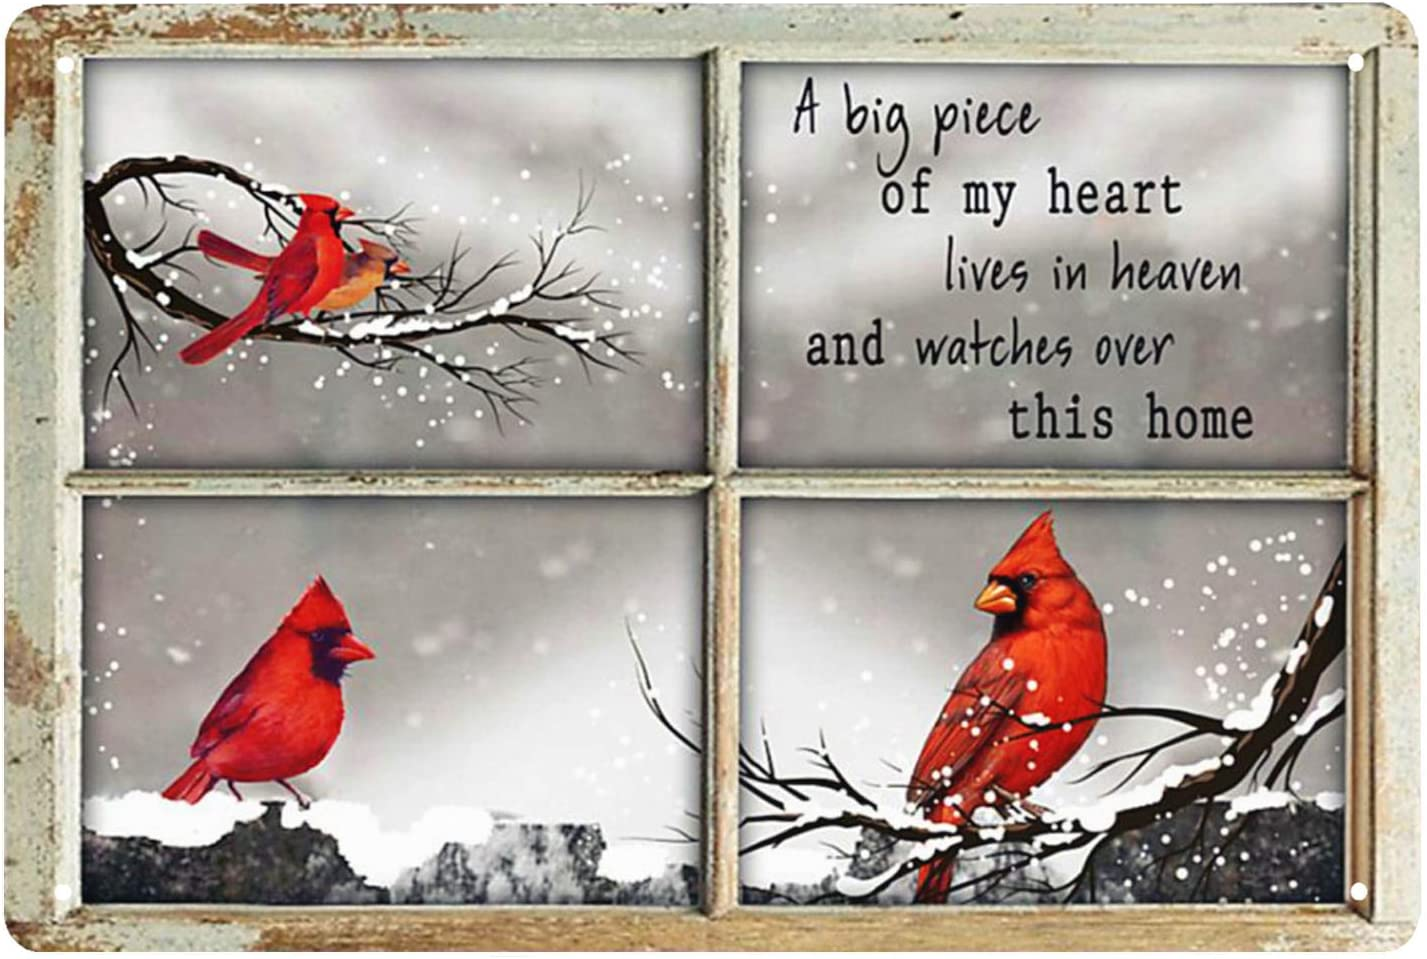 Vintage Tin Sign Cardinal Bird Out Side The Window A Big Piece Of My Heart Lives In Heaven And Watches Over This Home-Retro Home Wall Decoration Cave Bar Kitchen Decoration Sign 8x12 Inch